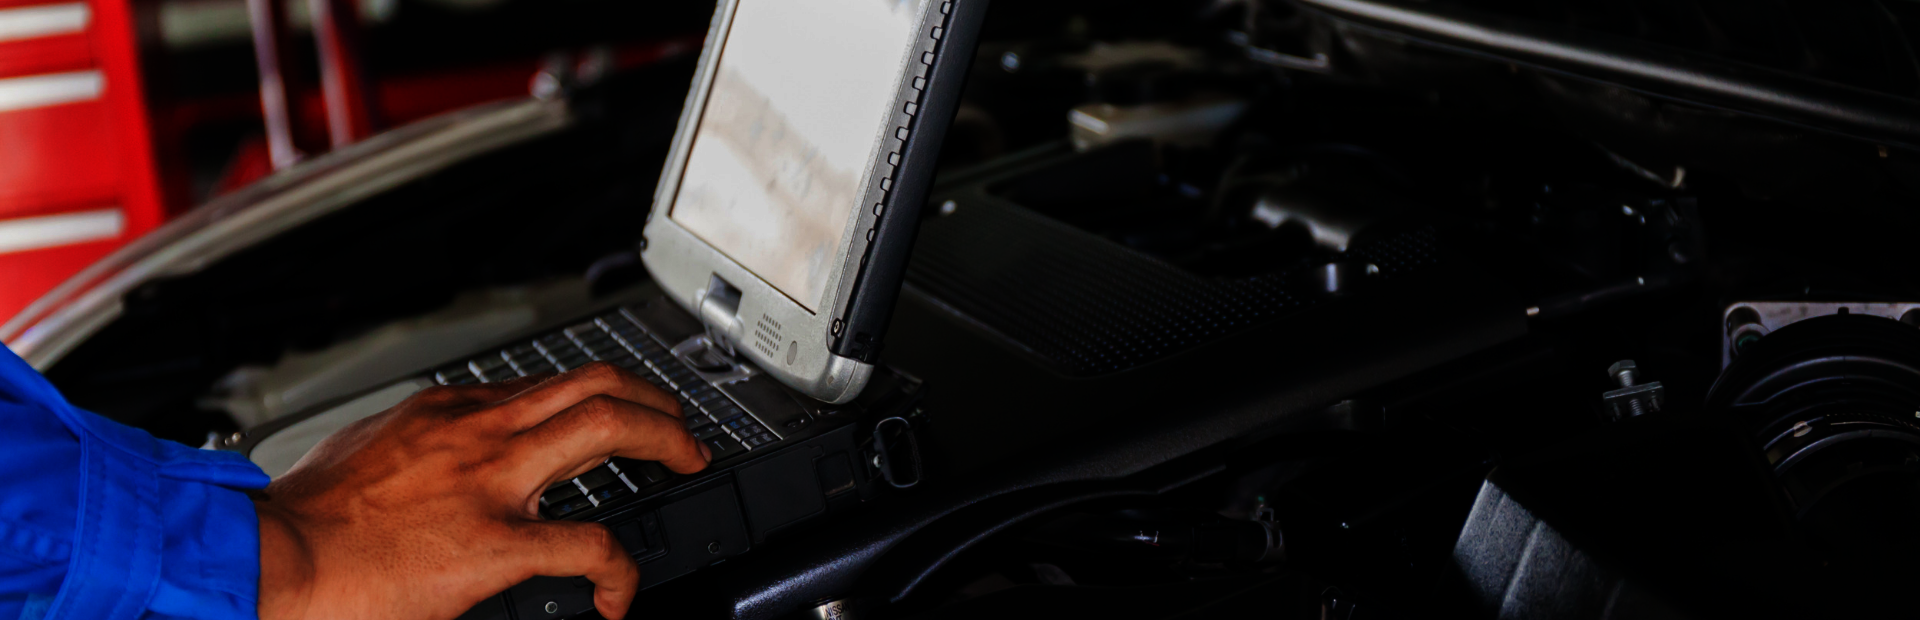 How To Print Off Your MOT Certificate - For Free! | MotorEasy